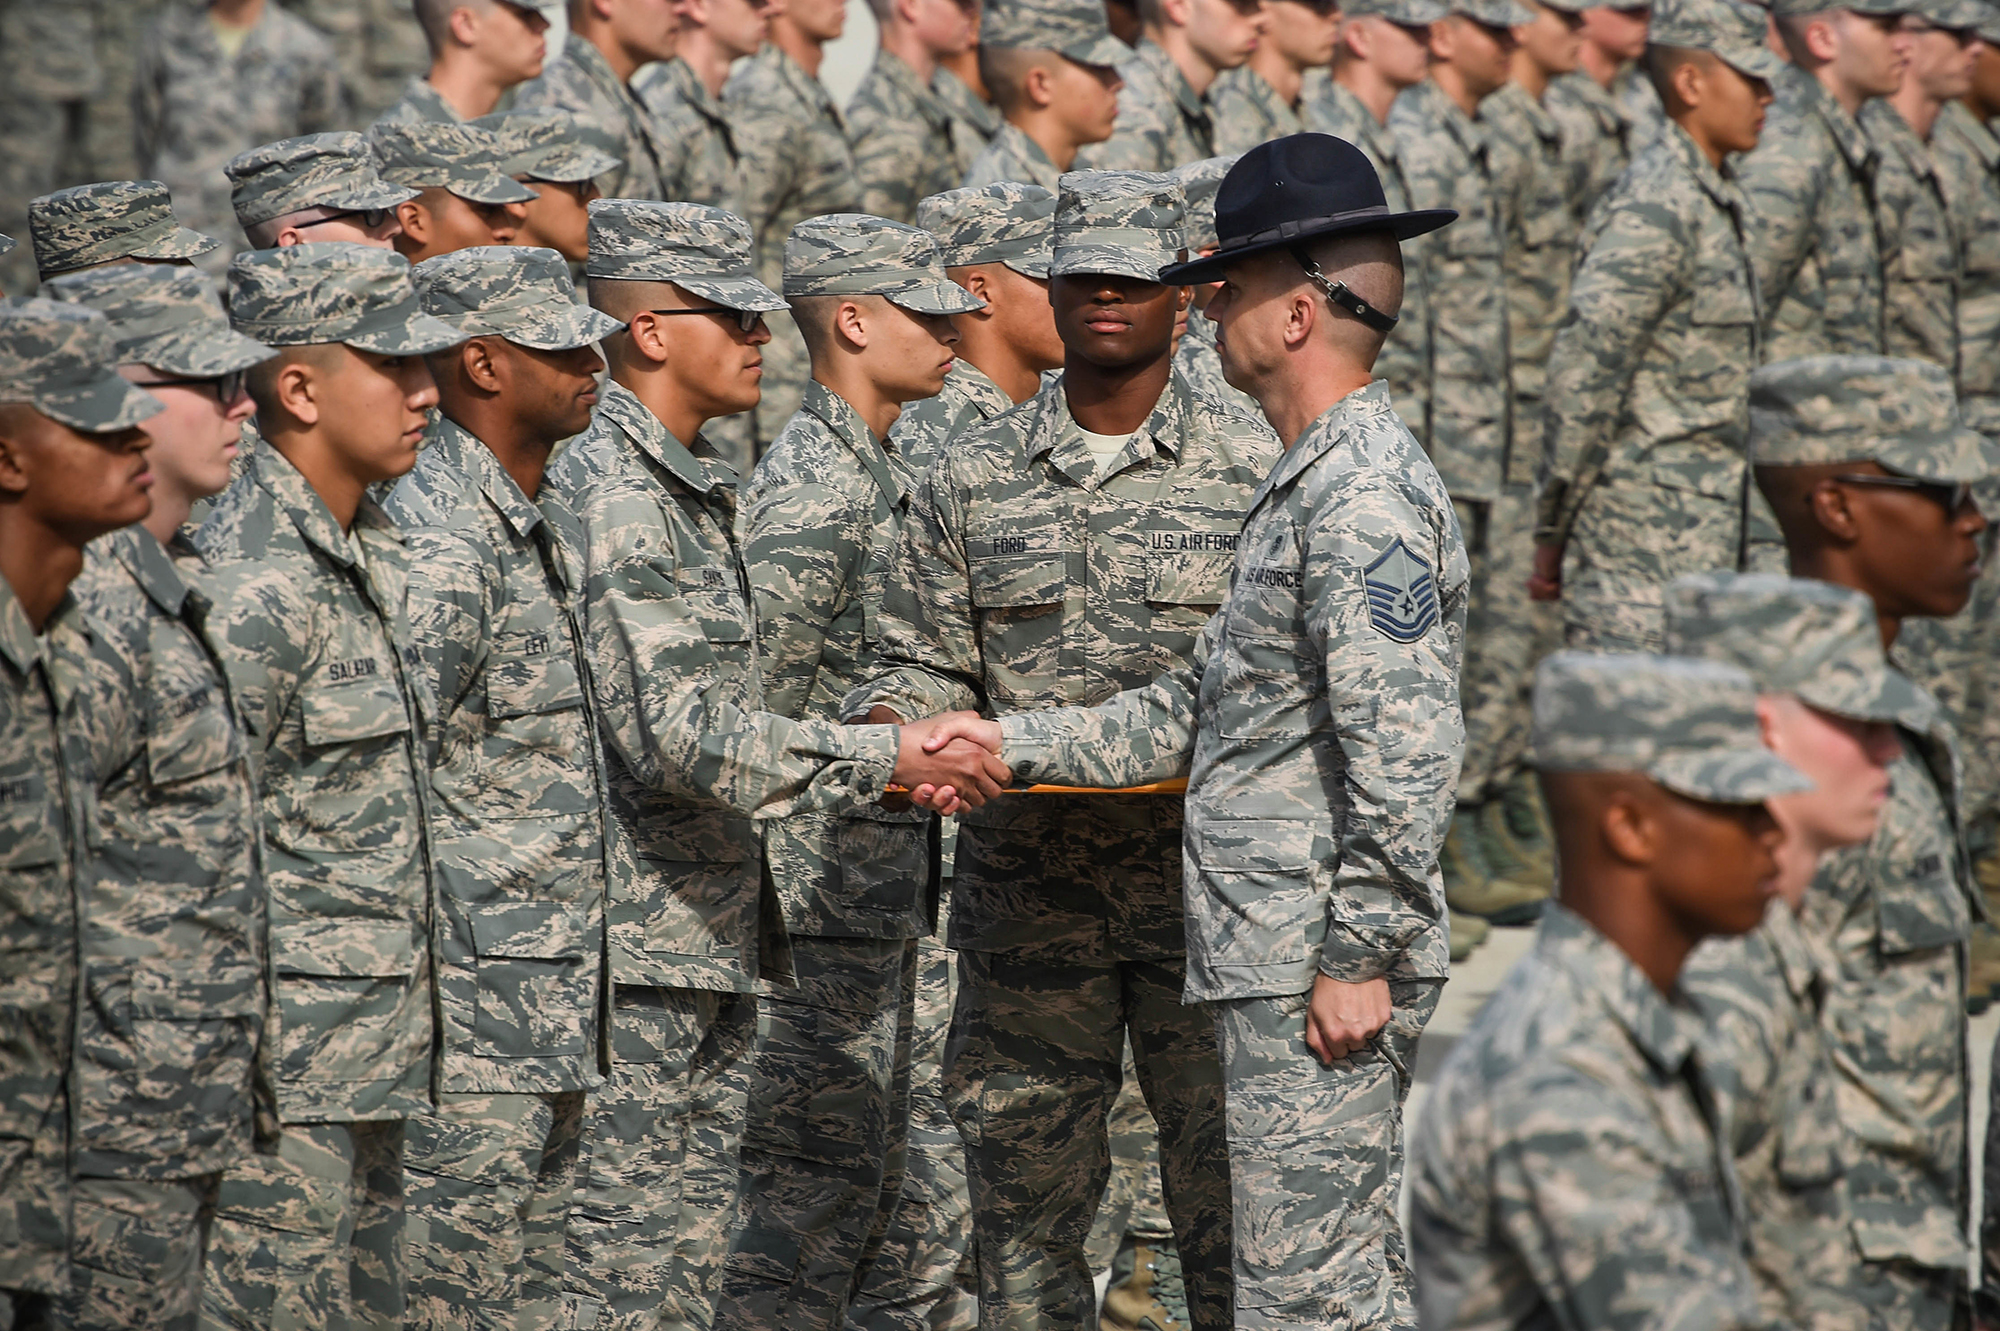 A military training instructor, center right, presents an airman's coin to one of his newly graduated trainees during the coin ceremony and retreat on Lackland Air Force Base, Texas, Oct. 17, 2019. The coin ceremony and retreat is the first time trainees are called airmen and the first day in eight weeks they are able to see their families and friends. (Airman 1st Class Mikayla Heineck/Air Force)